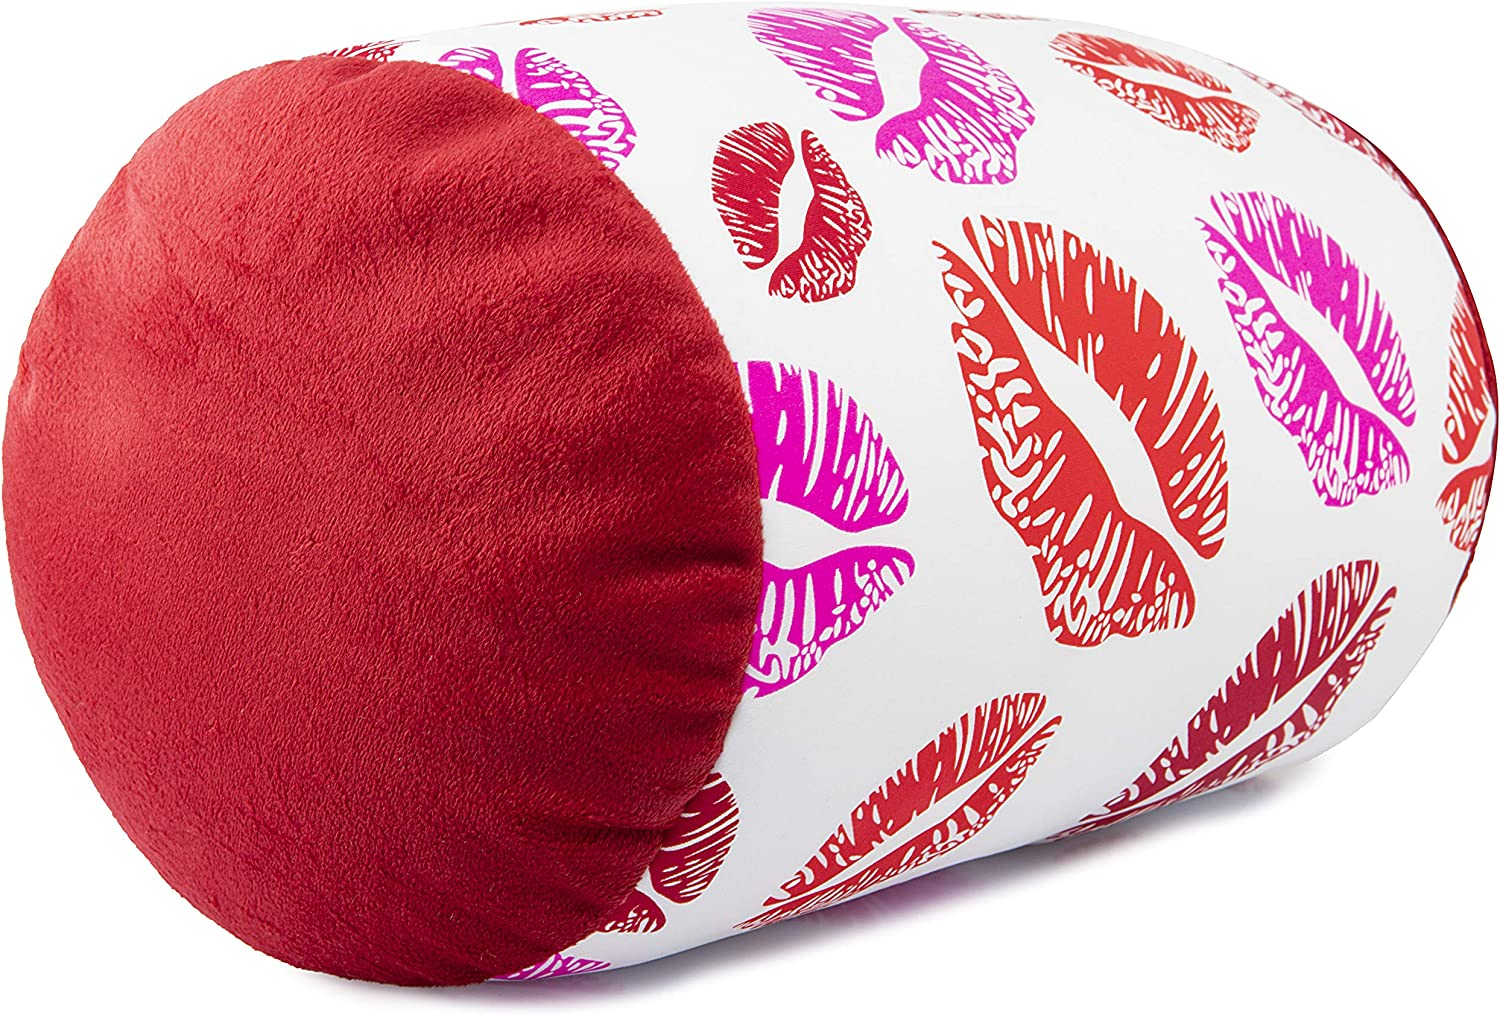 Deluxe Comfort Mbr Lip Kis Mooshi Squish Microbead Bed Pillow Pattern Kisses Home Kitchen